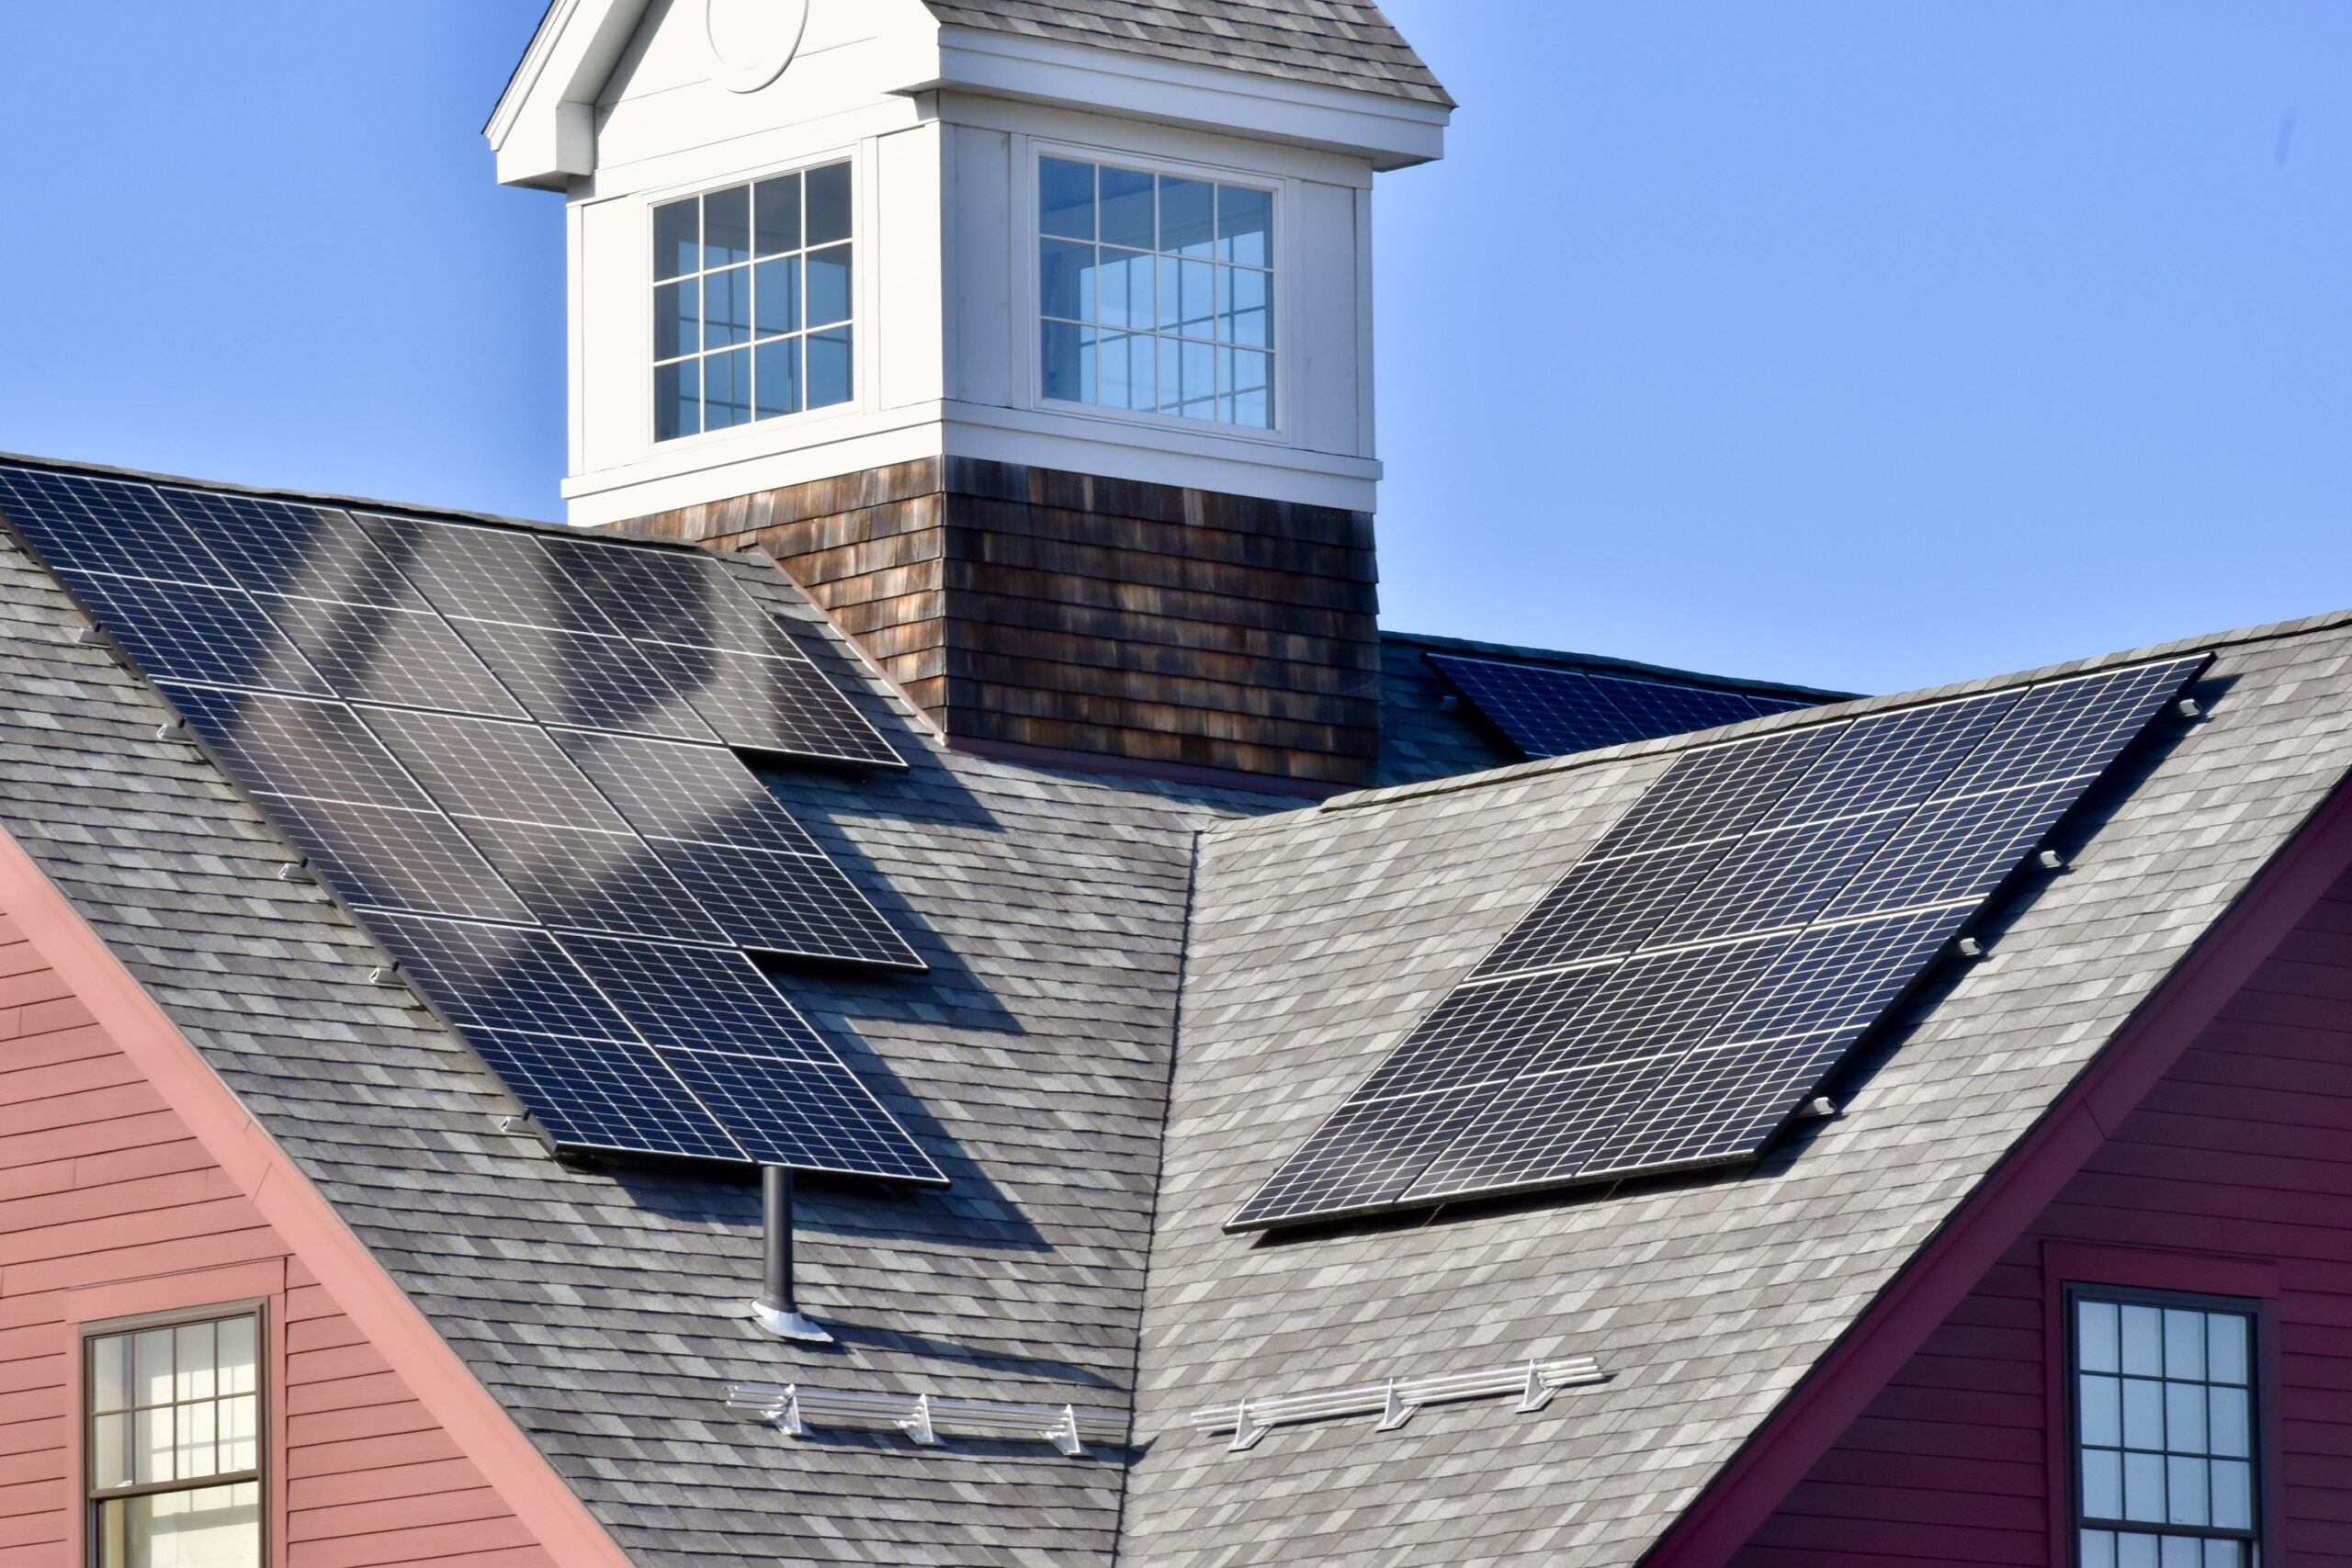 Solar panels on a building roof with a cupola